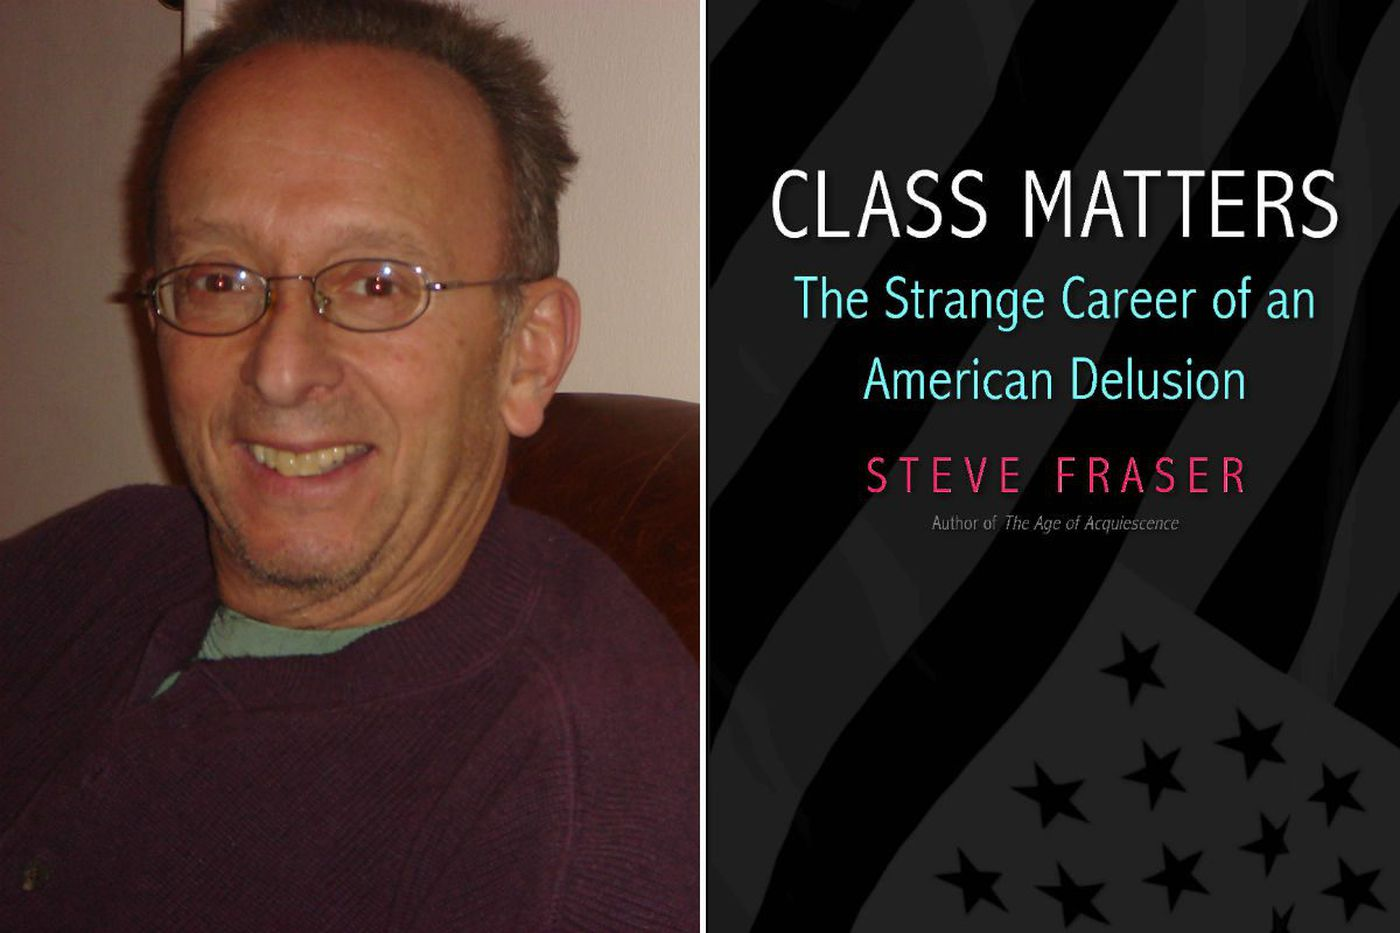 Steve Fraser's 'Class Matters': We ignore class to our peril